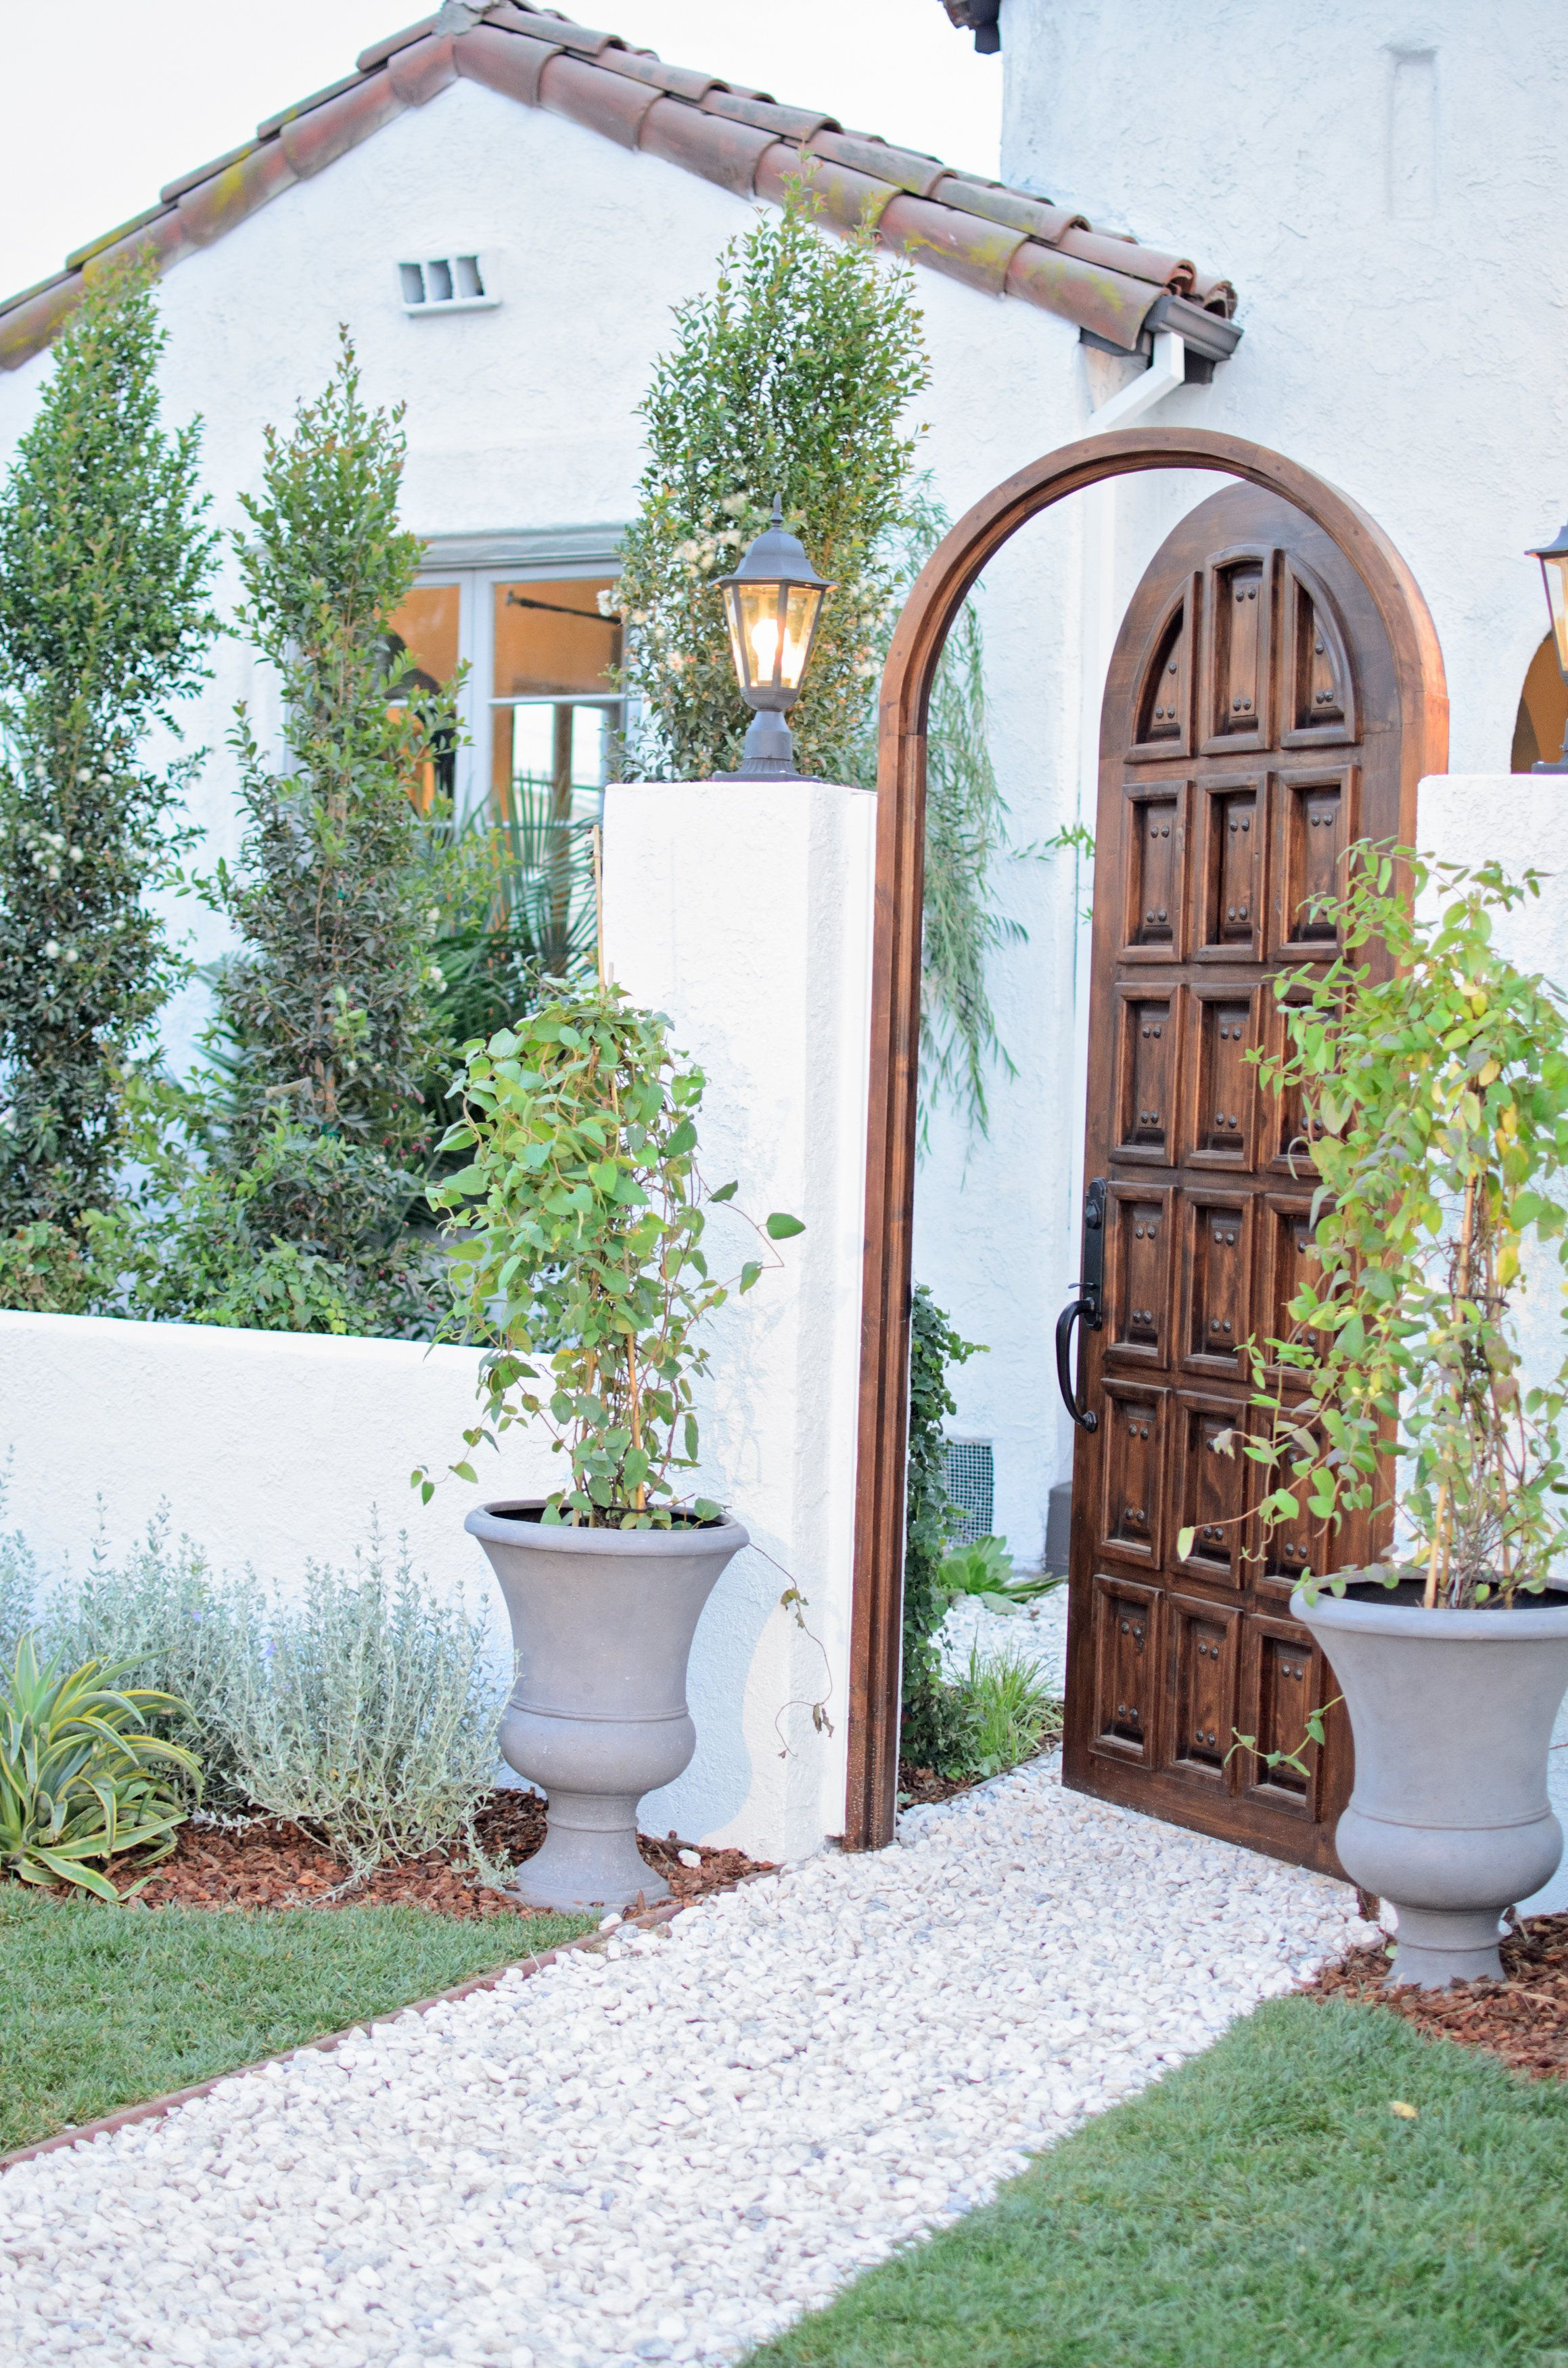 Our custom entry gate featured on american dream builders